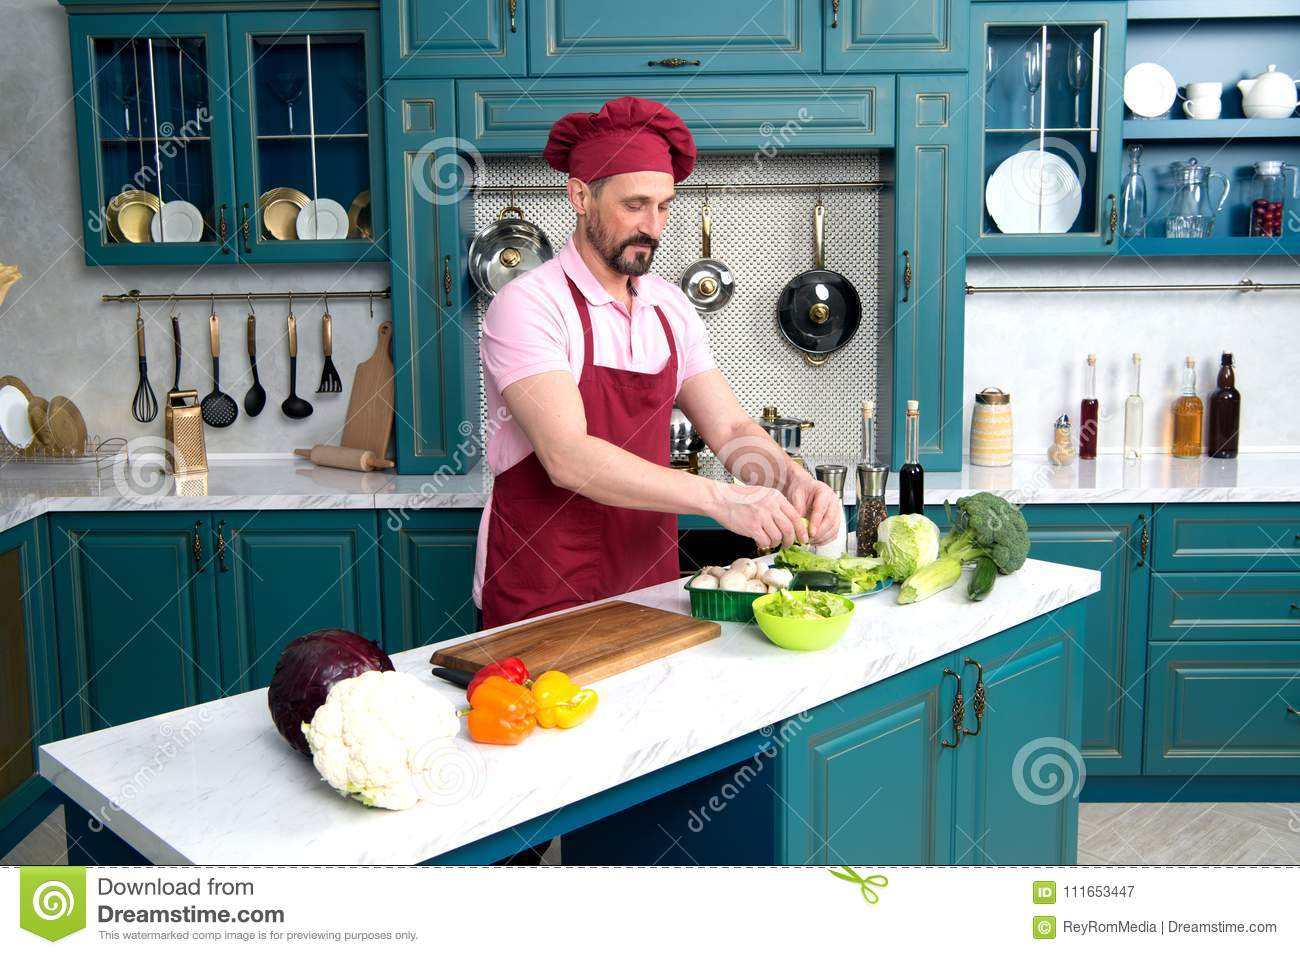 Chef cooking at kitchen. Man on kitchen cooking fresh vegetarian breakfast. Guy prepares salad with green vegetables.